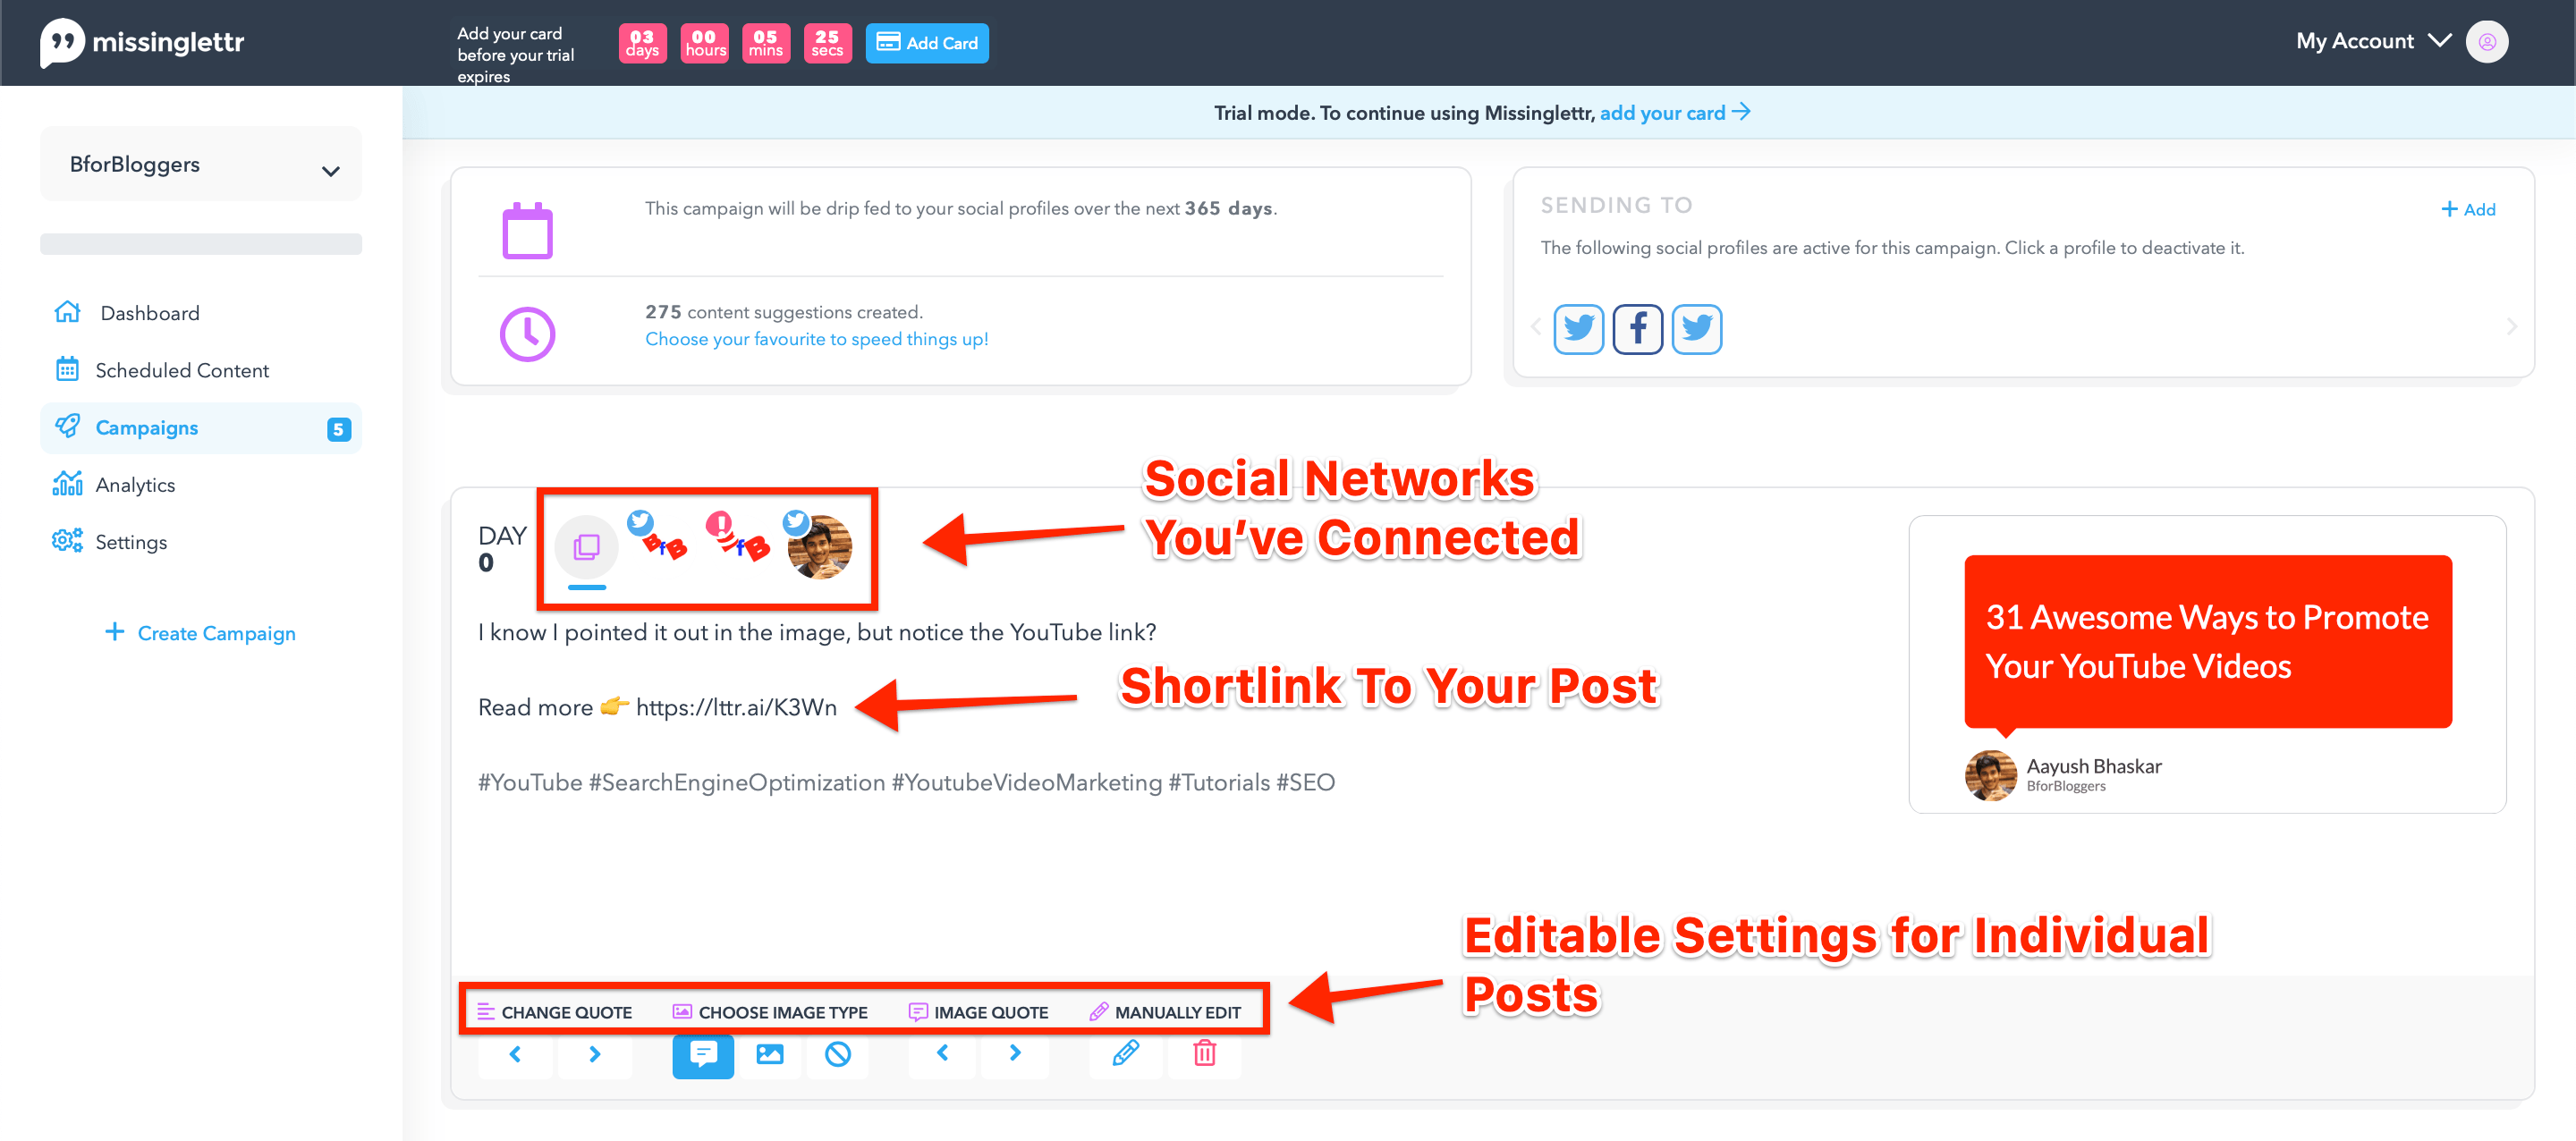 reviewing-missinglettr-campaign-for-your-social-networks